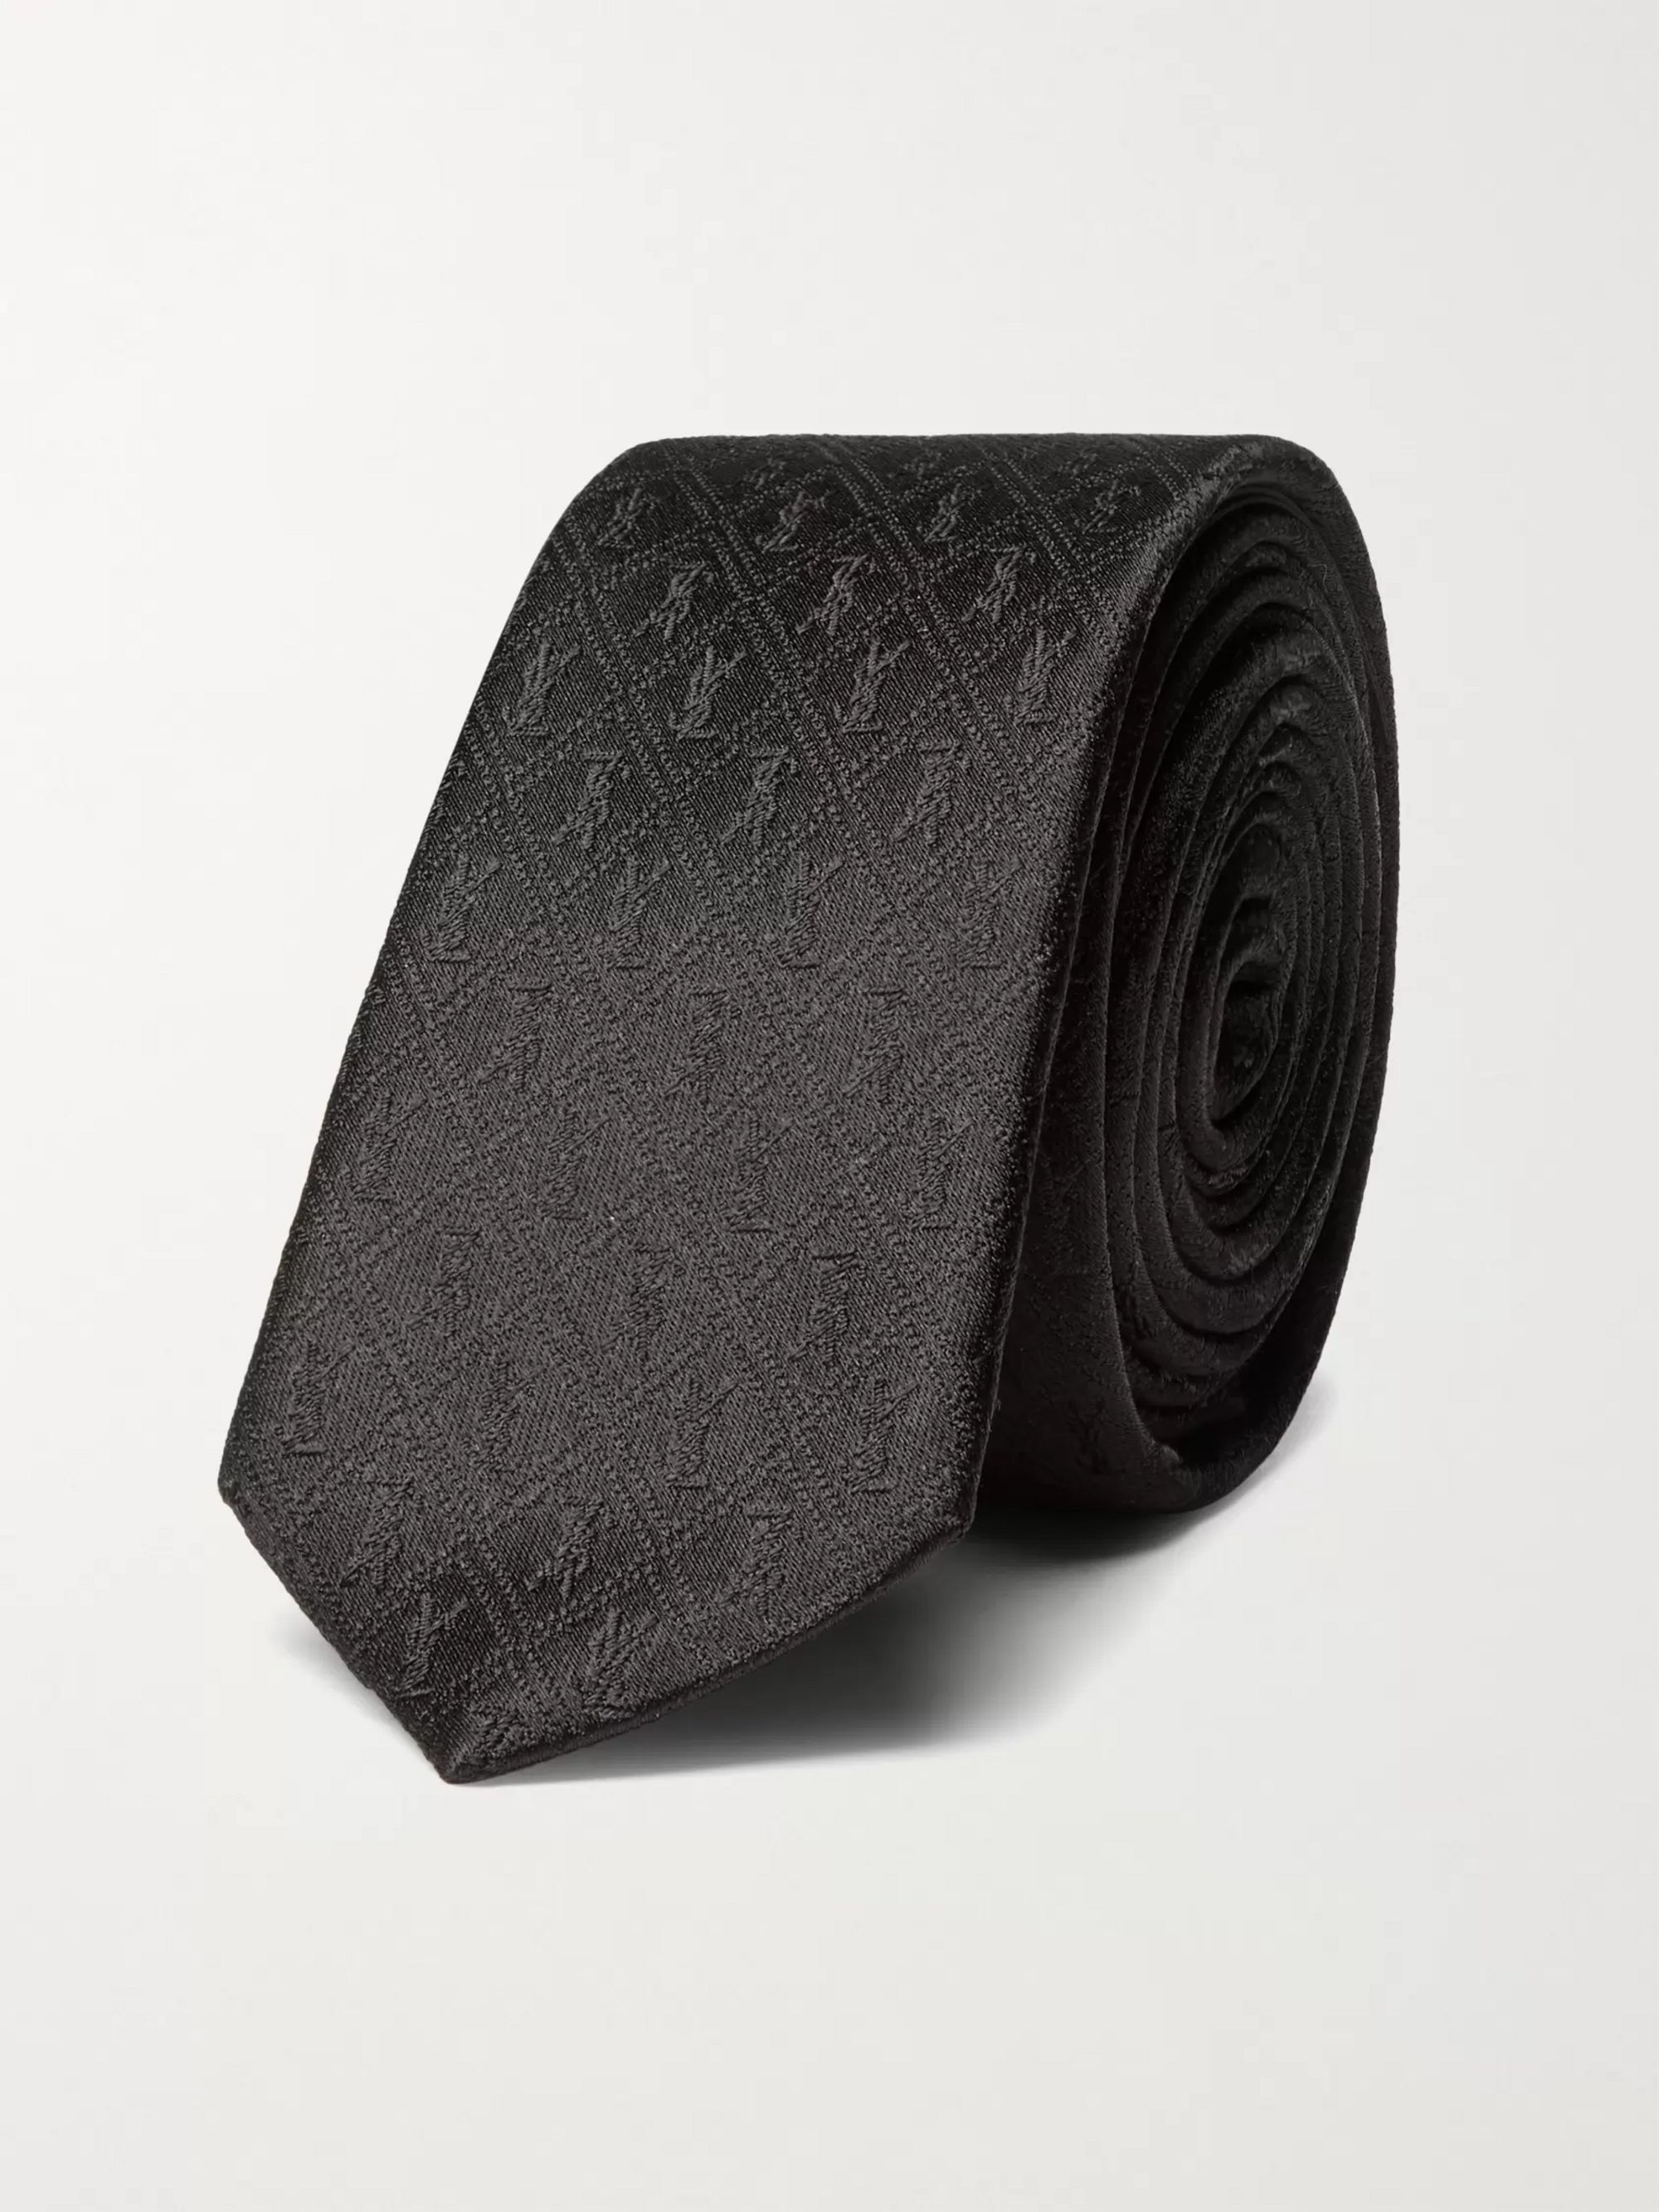 생 로랑 Saint Laurent 4cm Logo-Jacquard Silk Tie,Black